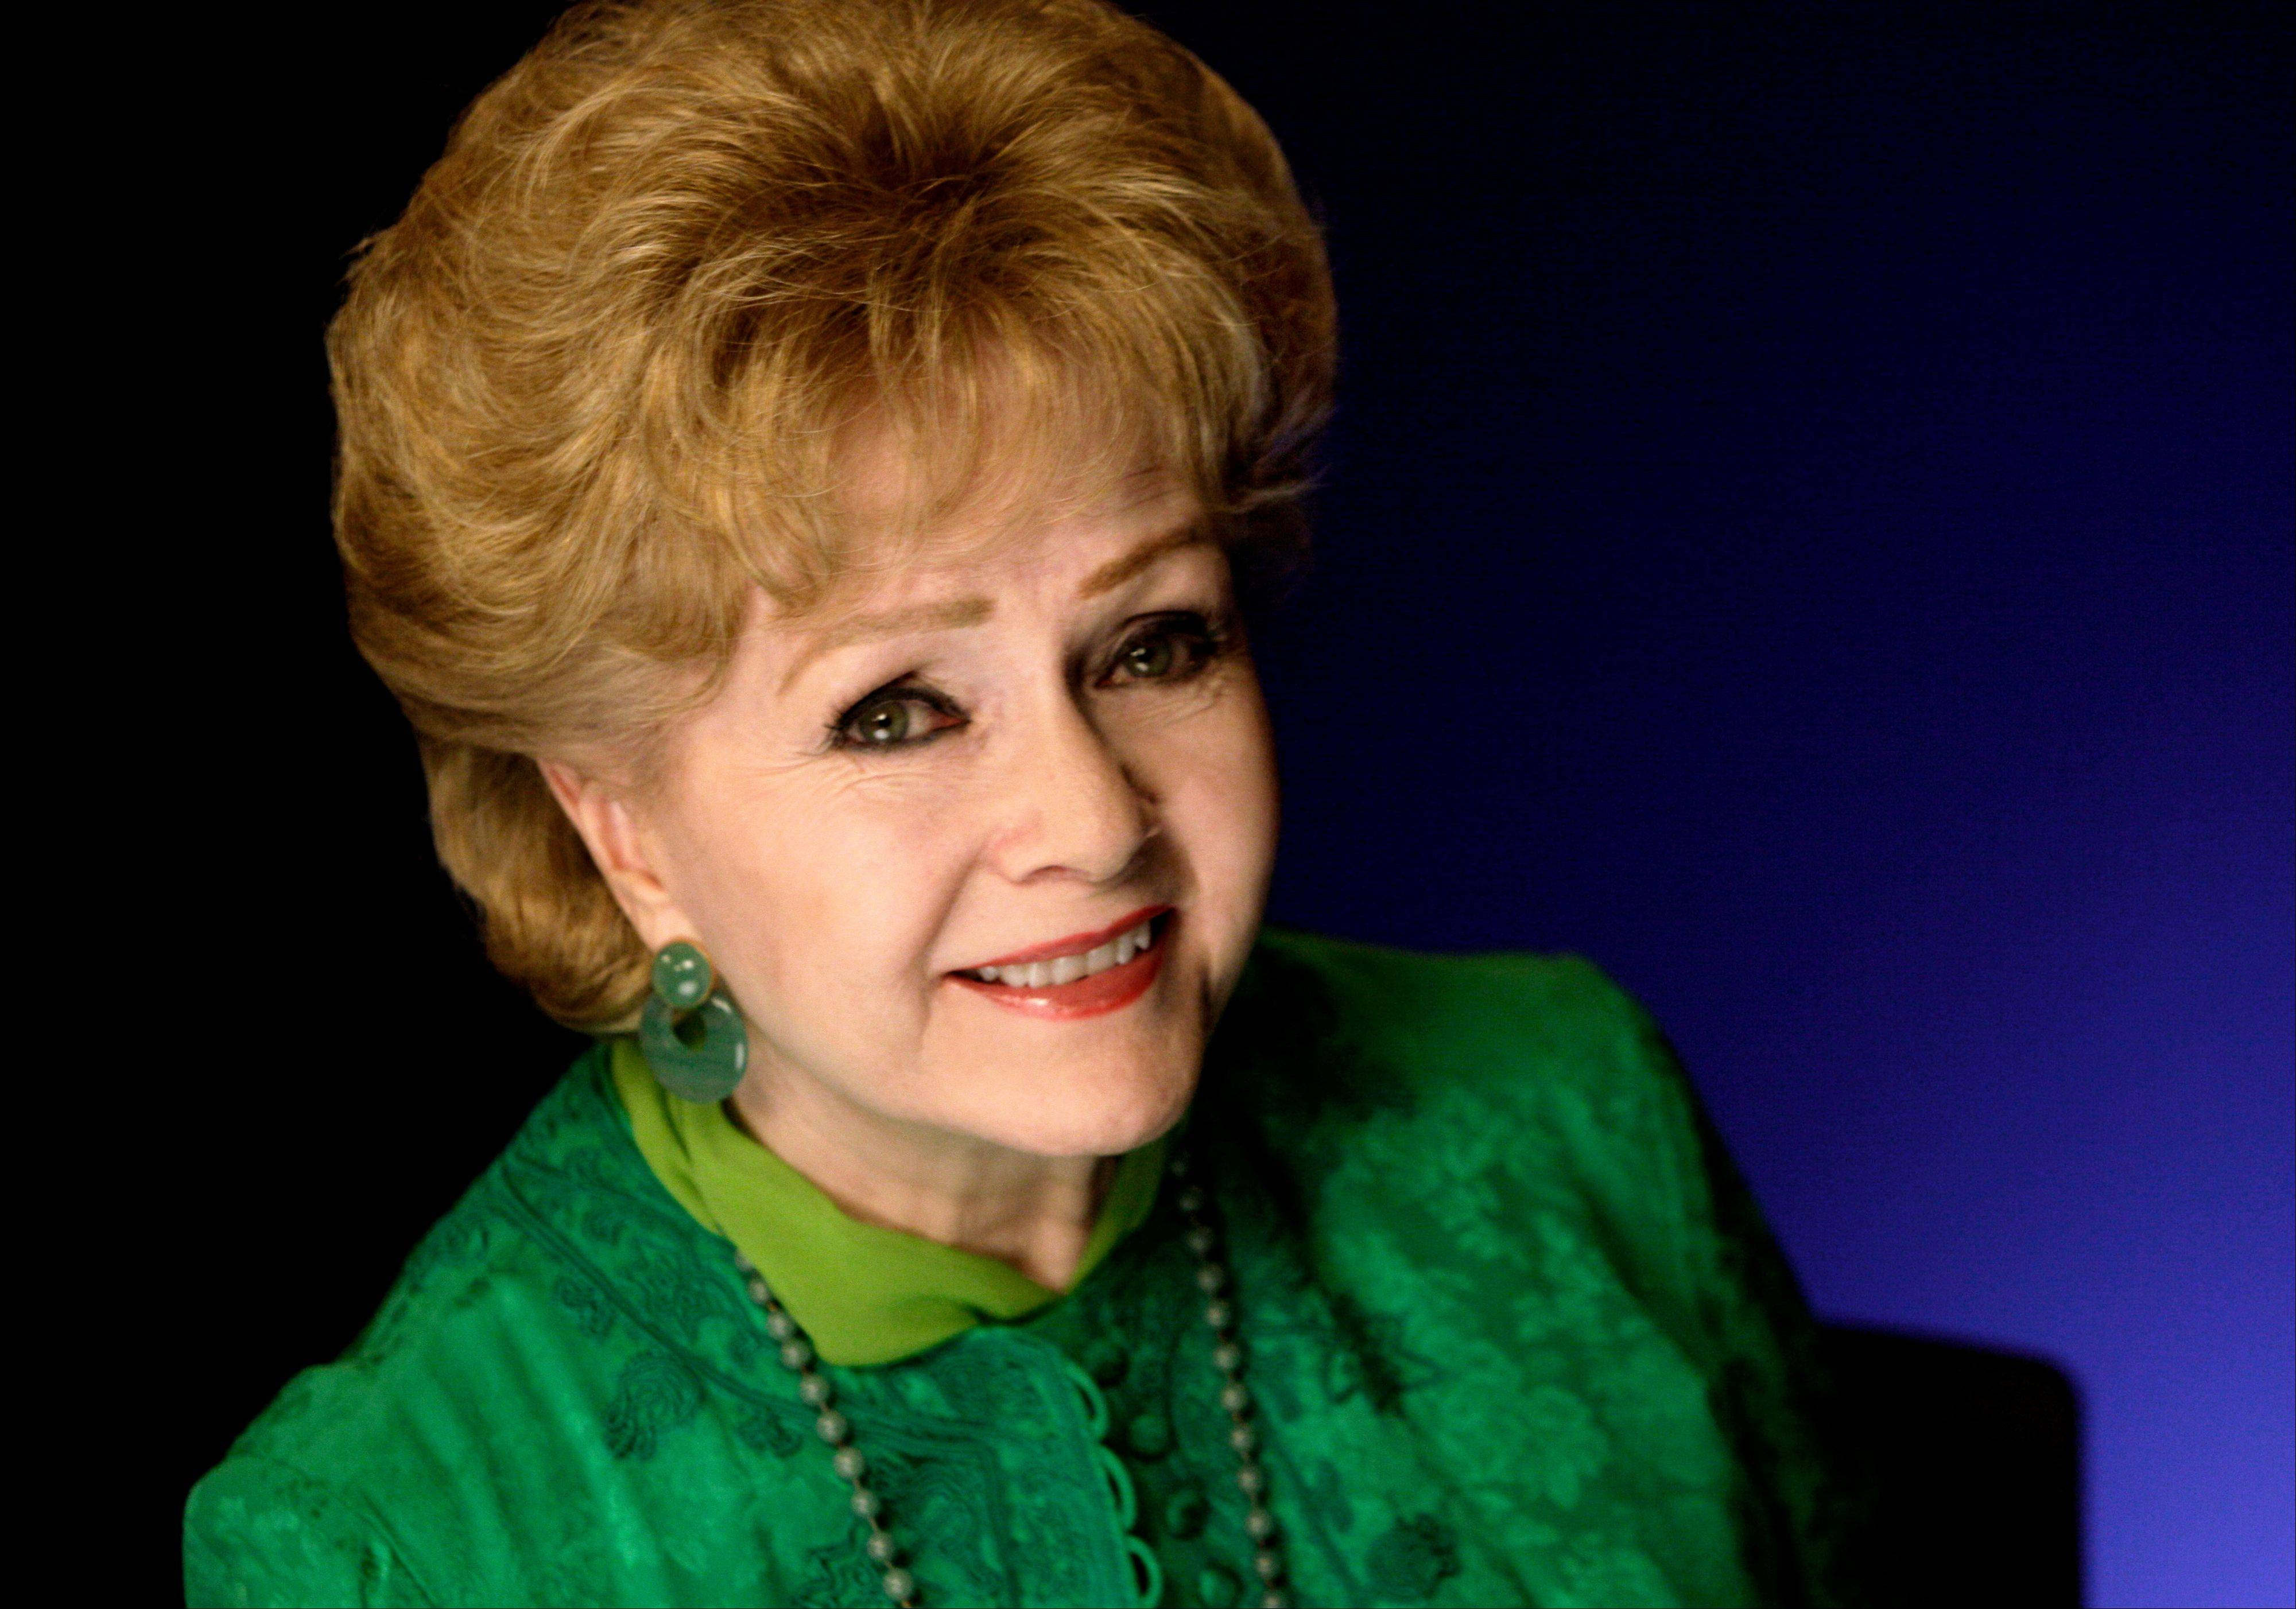 Actress Debbie Reynolds comes to the Arcada Theatre in St. Charles to sing and share stories from her Hollywood career.